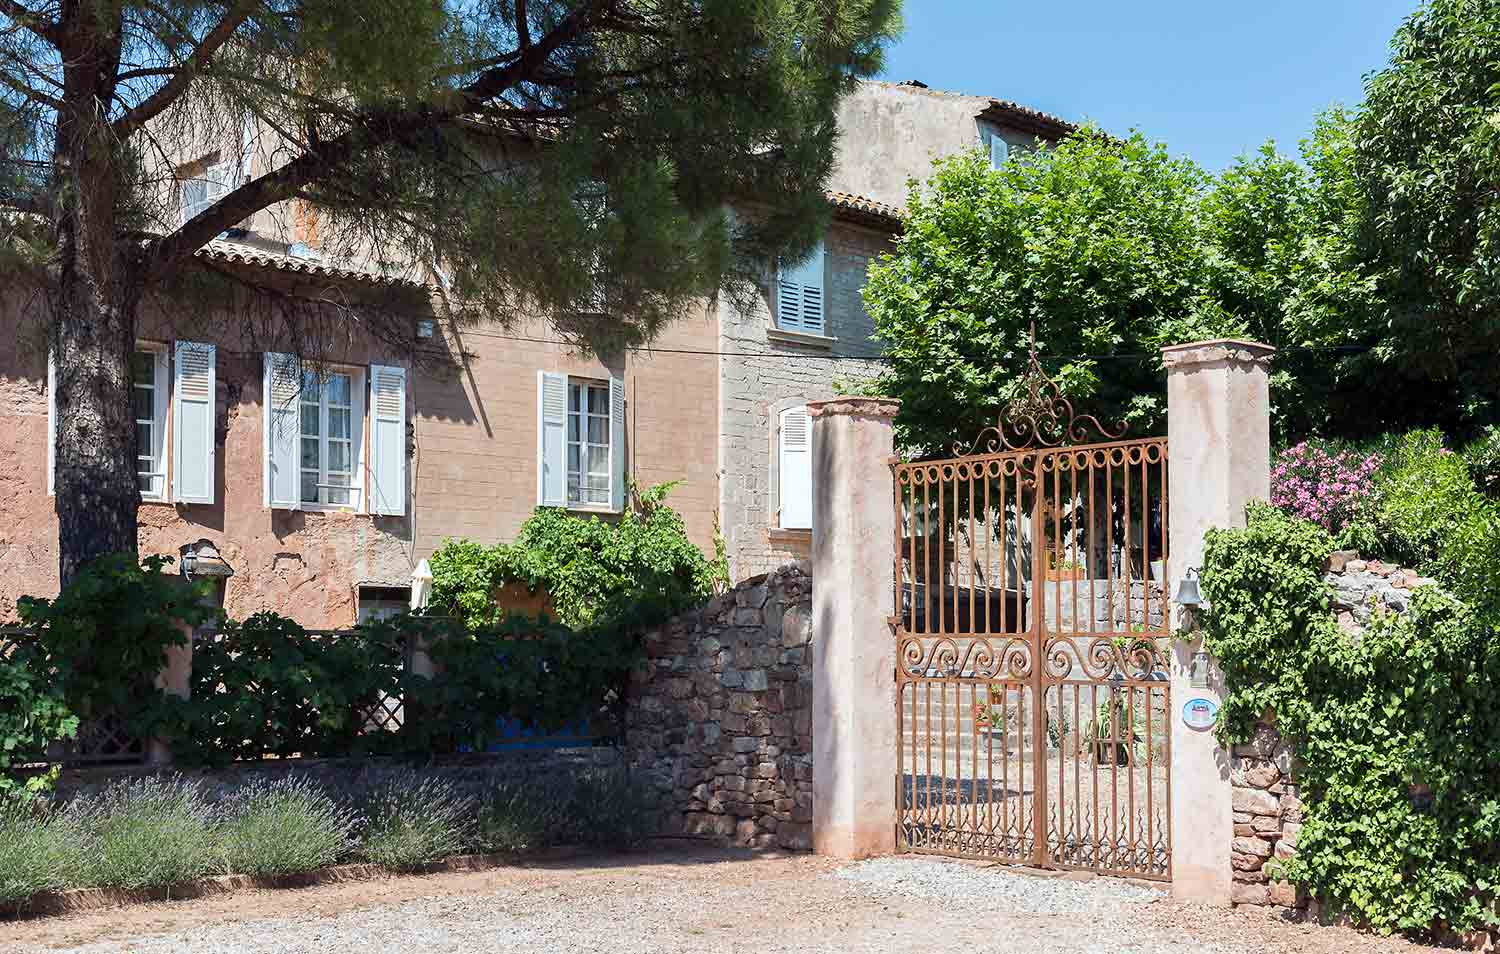 Chambres d 39 hotes var charme piscine chauff e en provence - Chambres d hotes les baux de provence ...